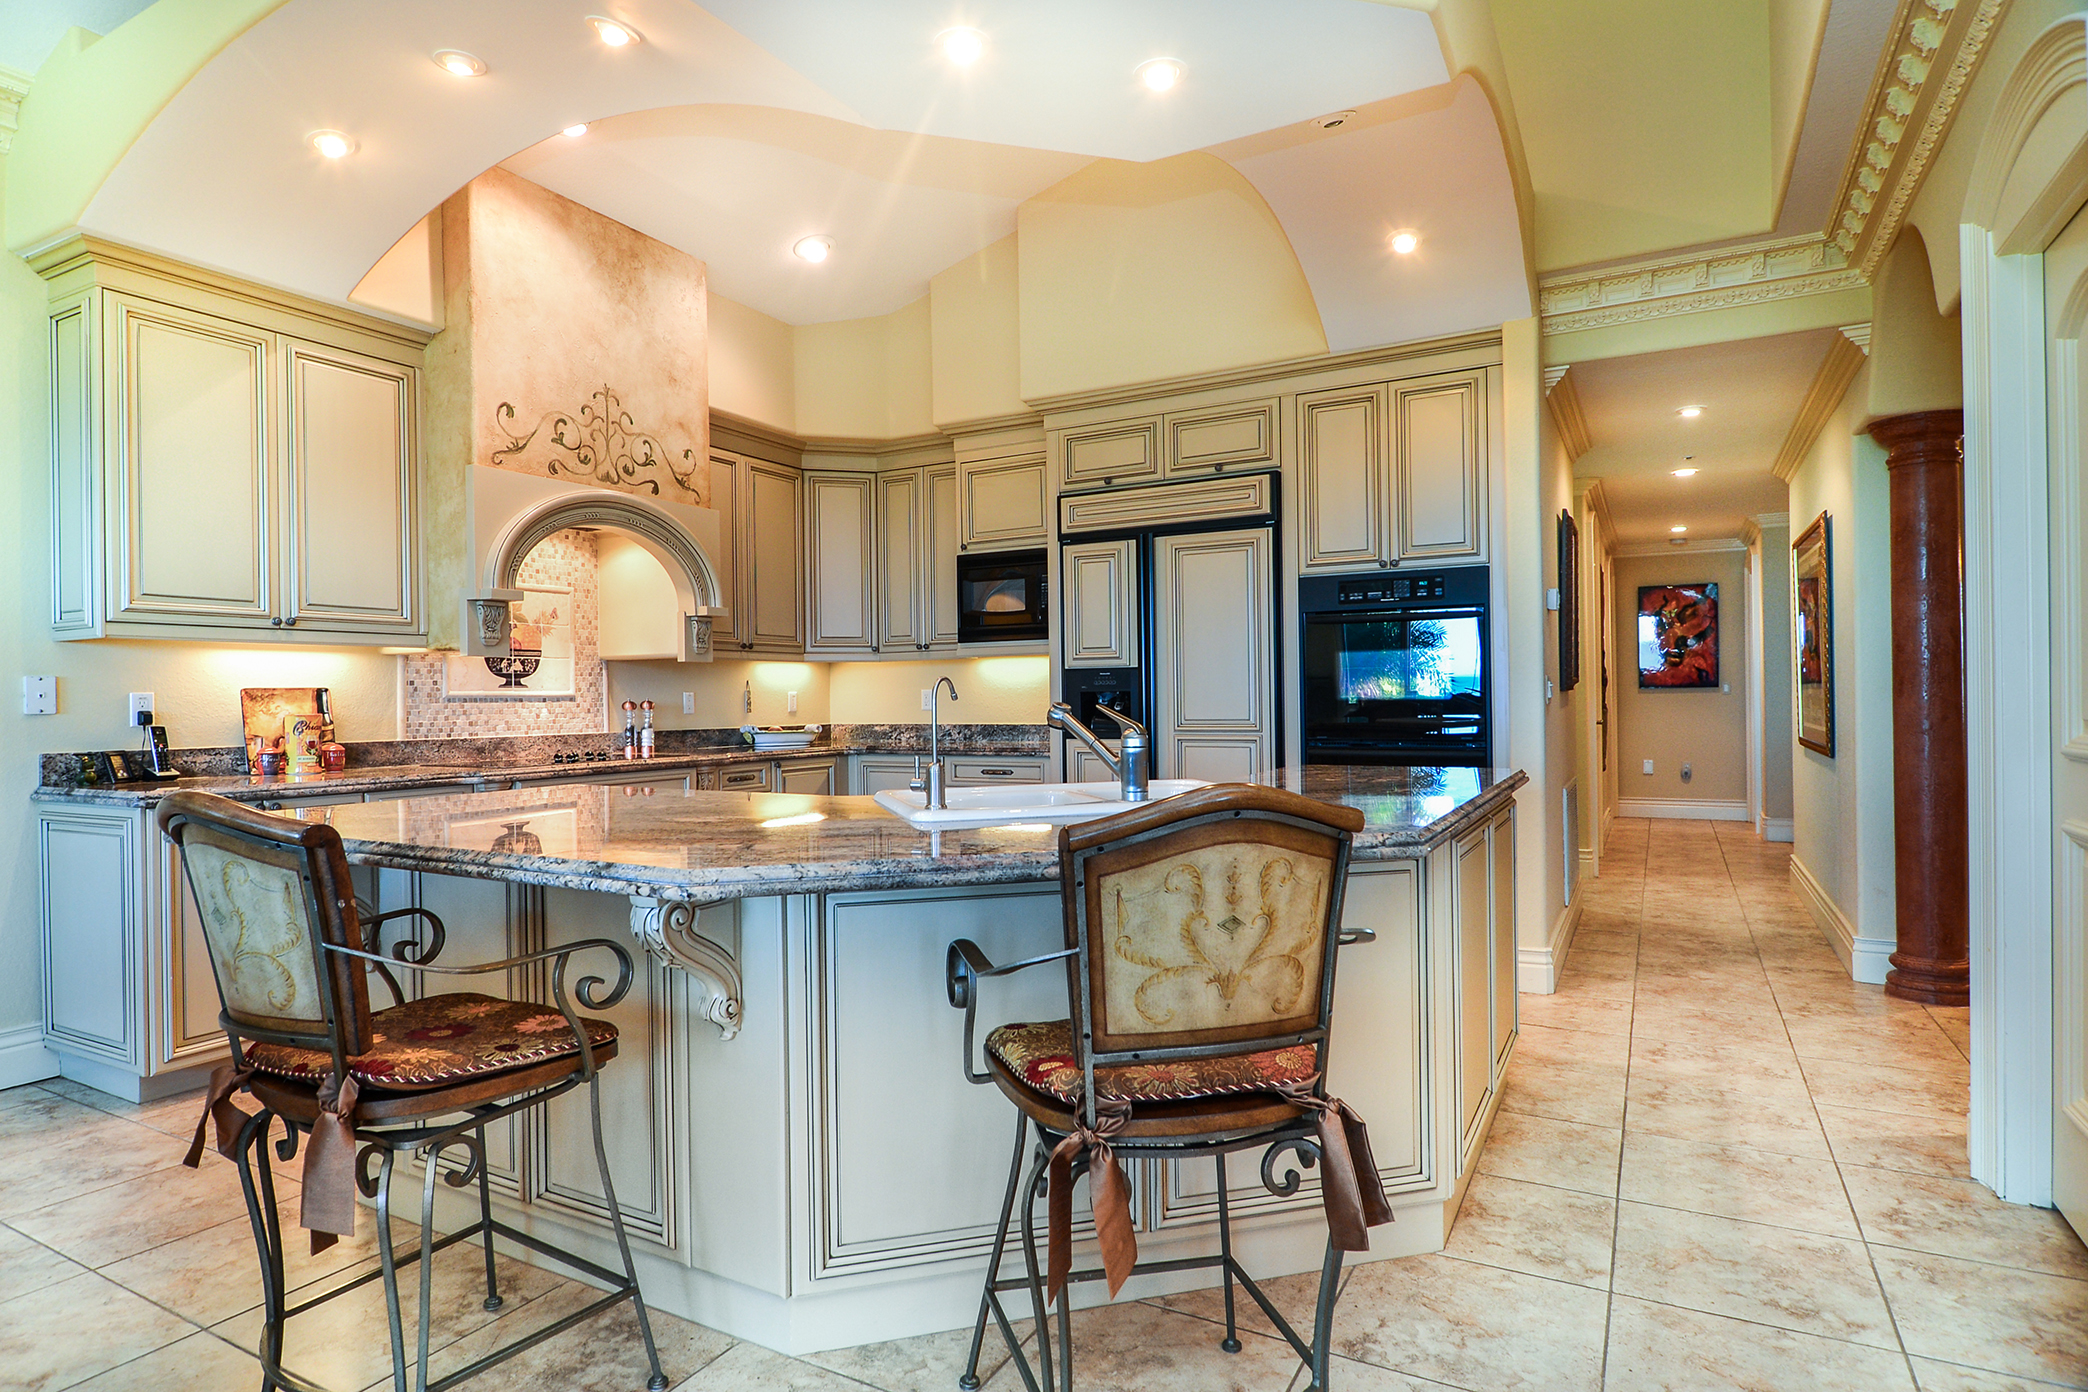 Custom Wood Cabinetry, Recessed LED Lighting and Stunning Crown Molding Throughout